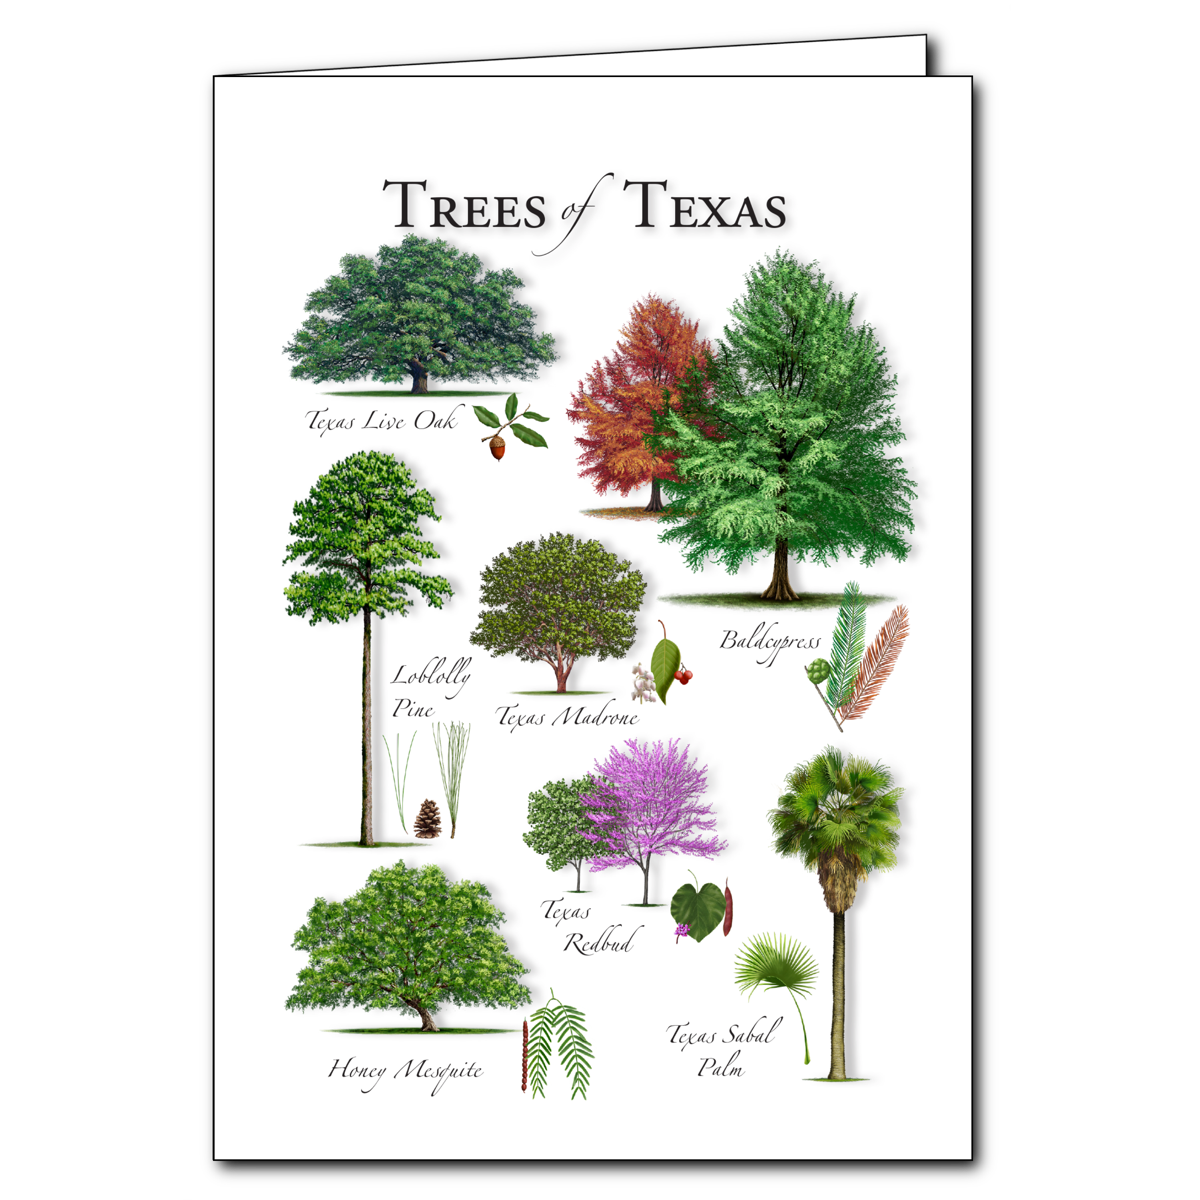 Trees of texas regional cardset of 6 greeting cards new trees of texas regional card set of 6 greeting cards new m4hsunfo